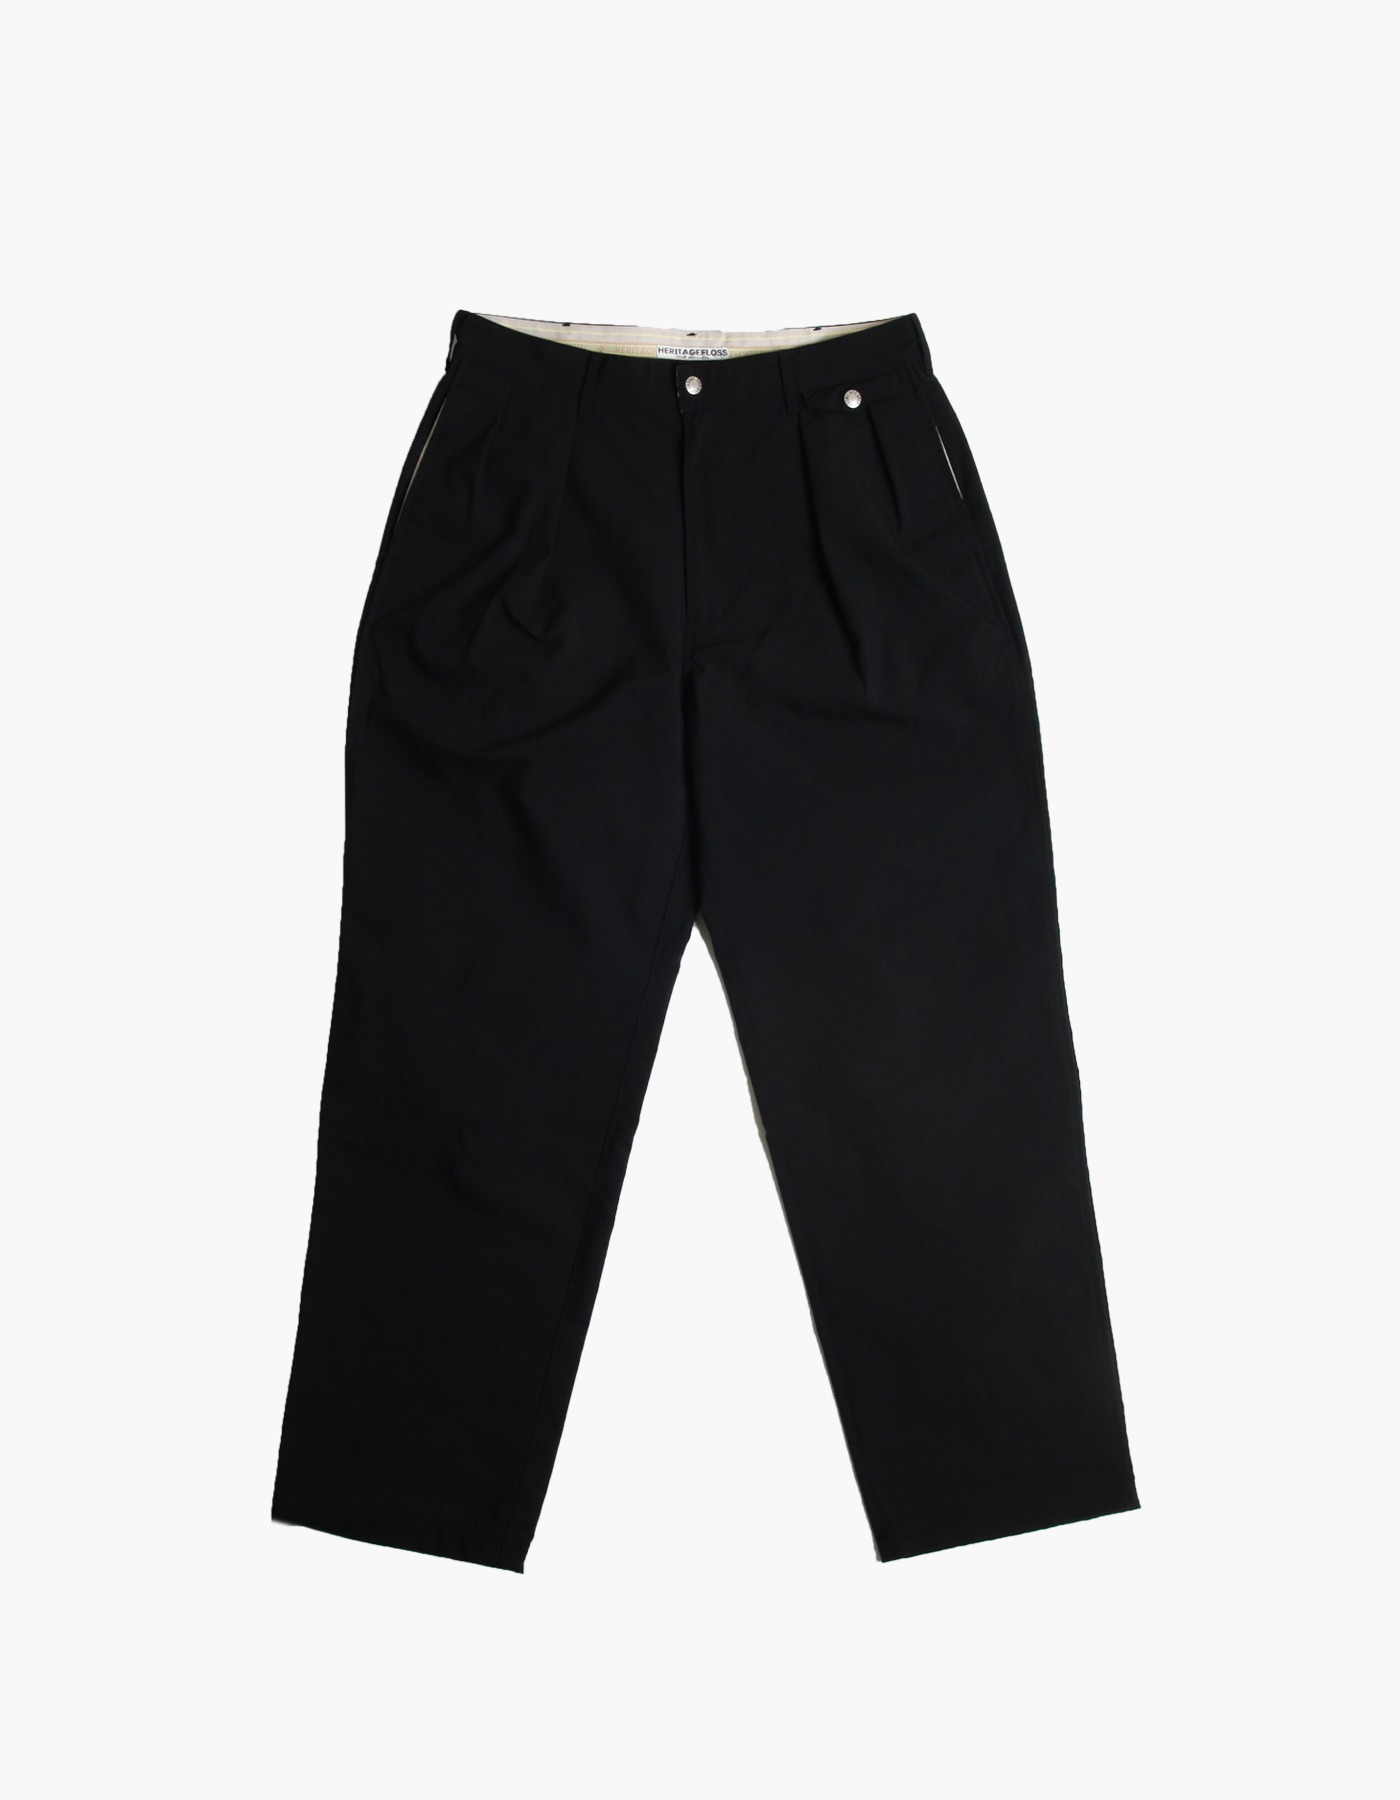 QUICK-DRYING NYLON CHINO PANTS / BLACK